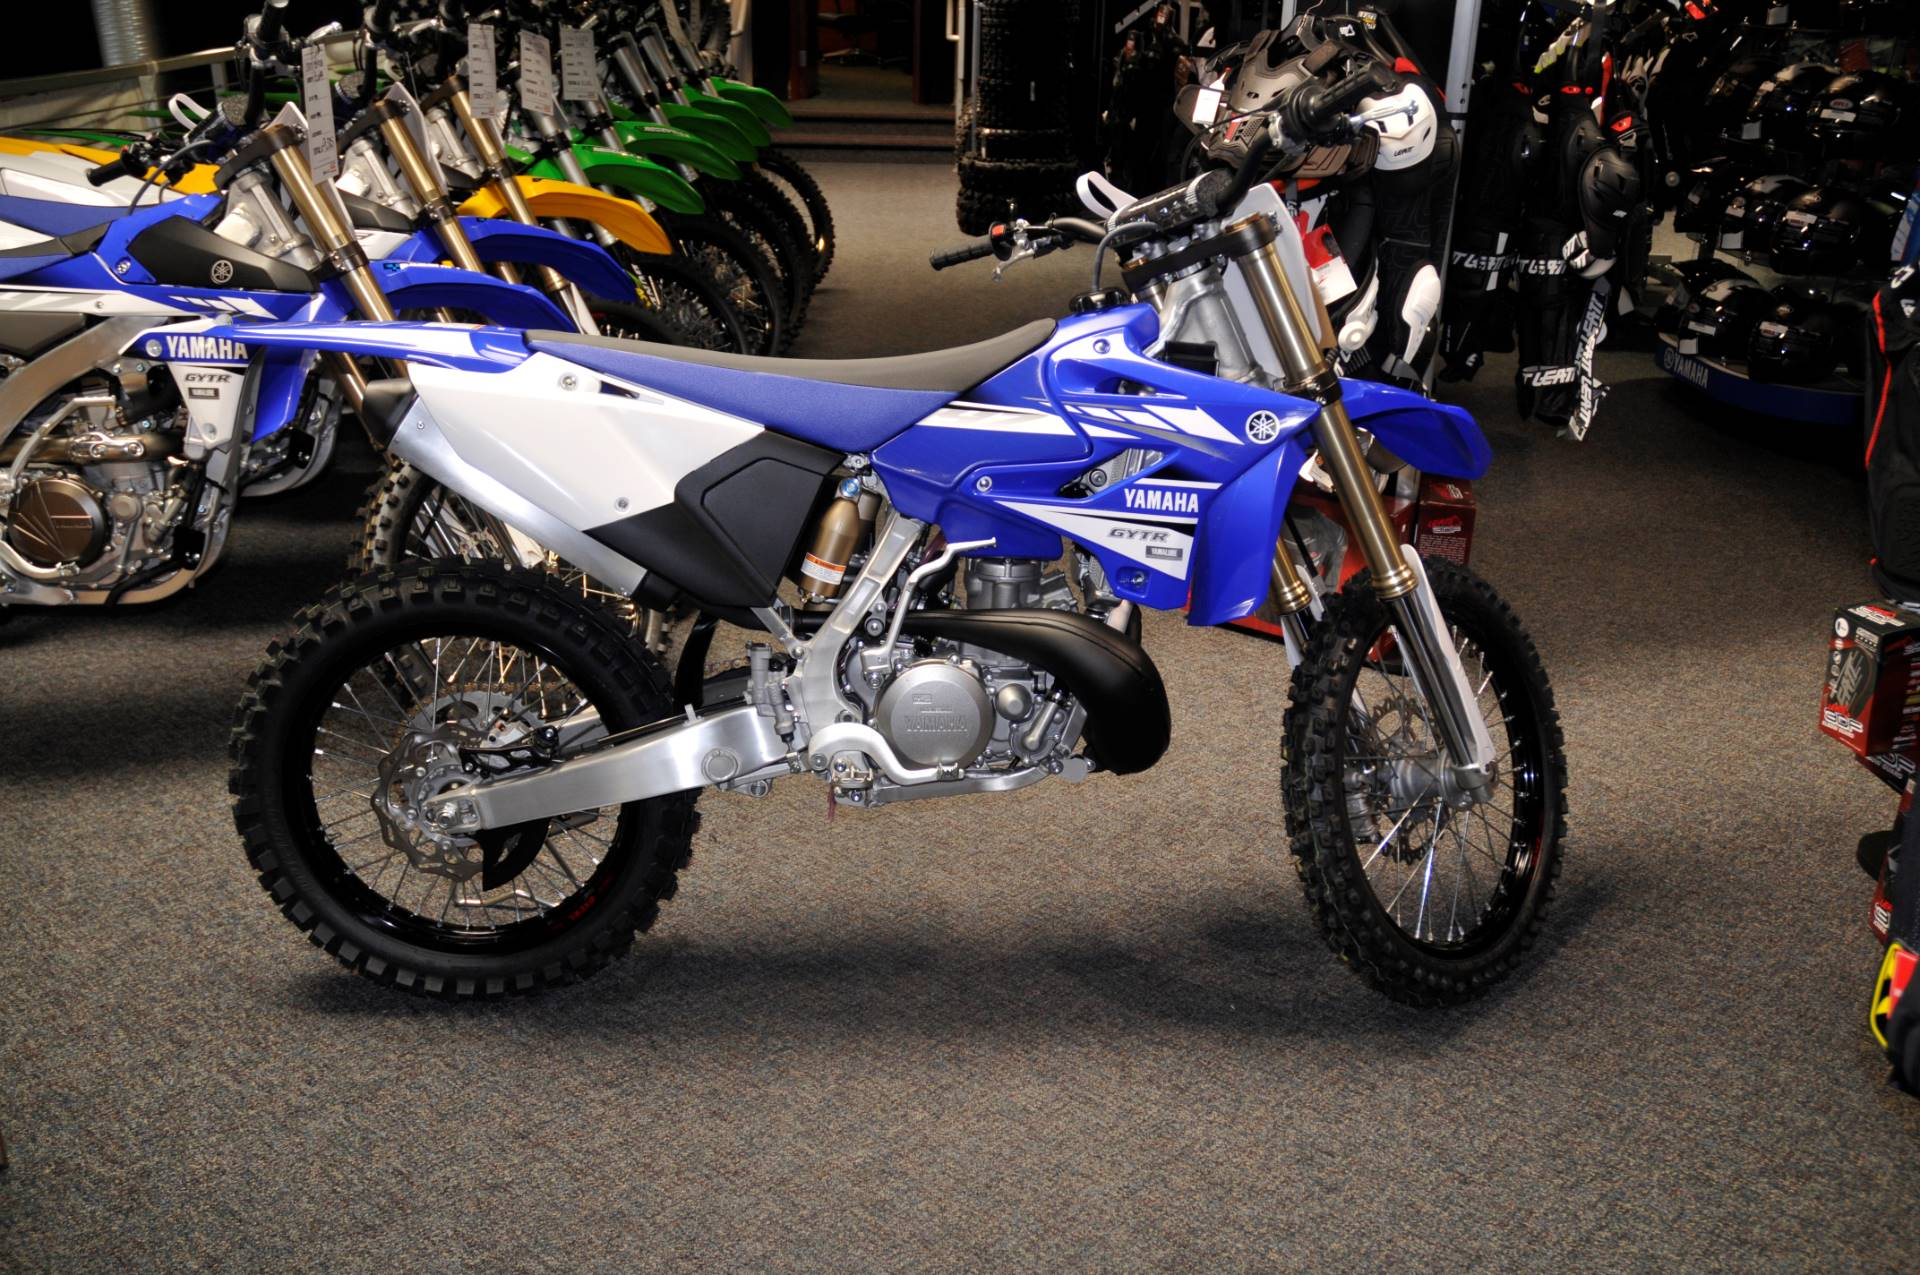 New 2017 Yamaha Yz250 Motorcycles In Roseville Ca Stock